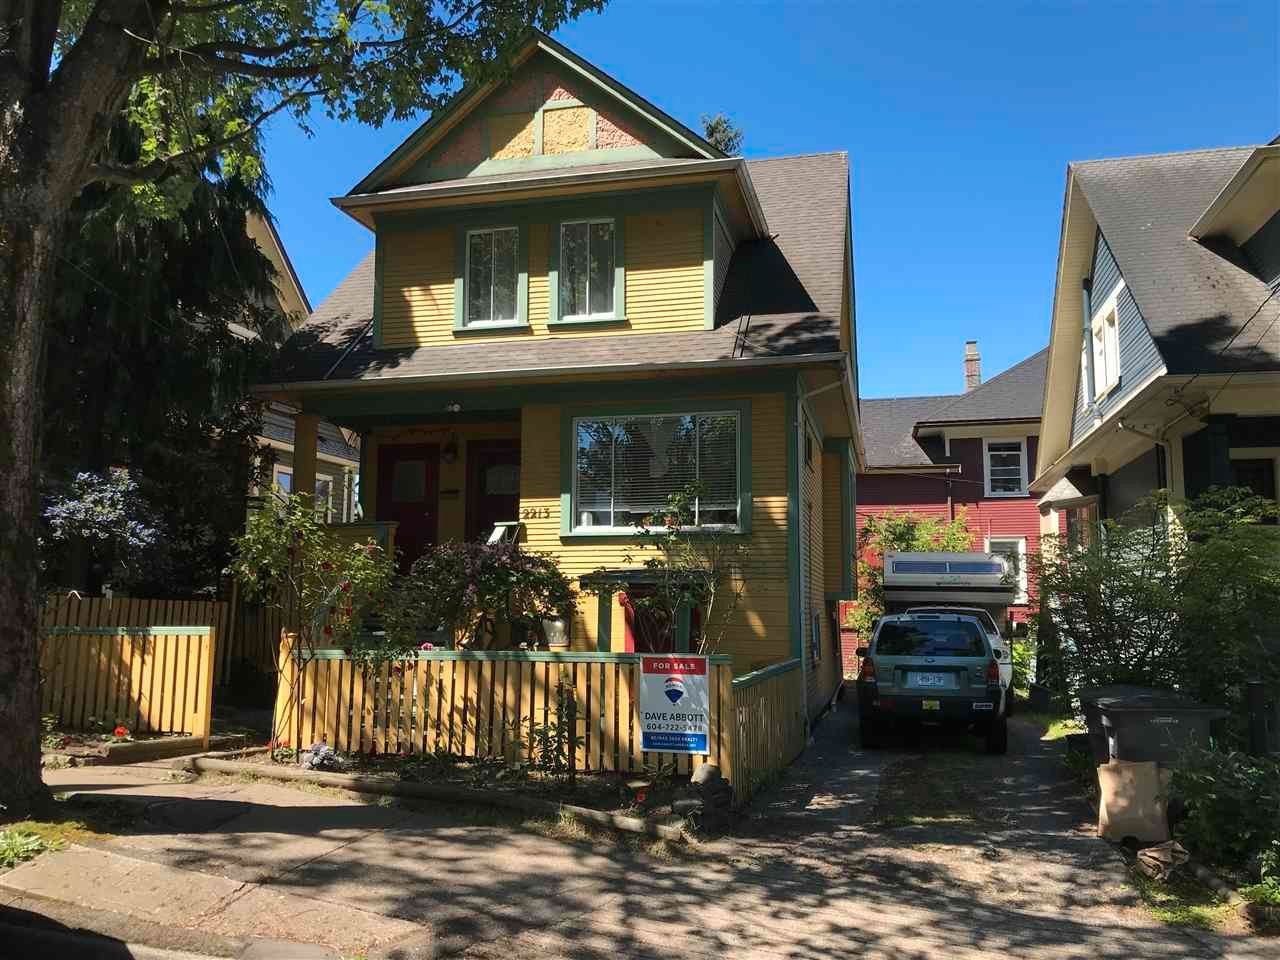 Main Photo: 2213 ONTARIO Street in Vancouver: Mount Pleasant VW House for sale (Vancouver West)  : MLS®# R2583696